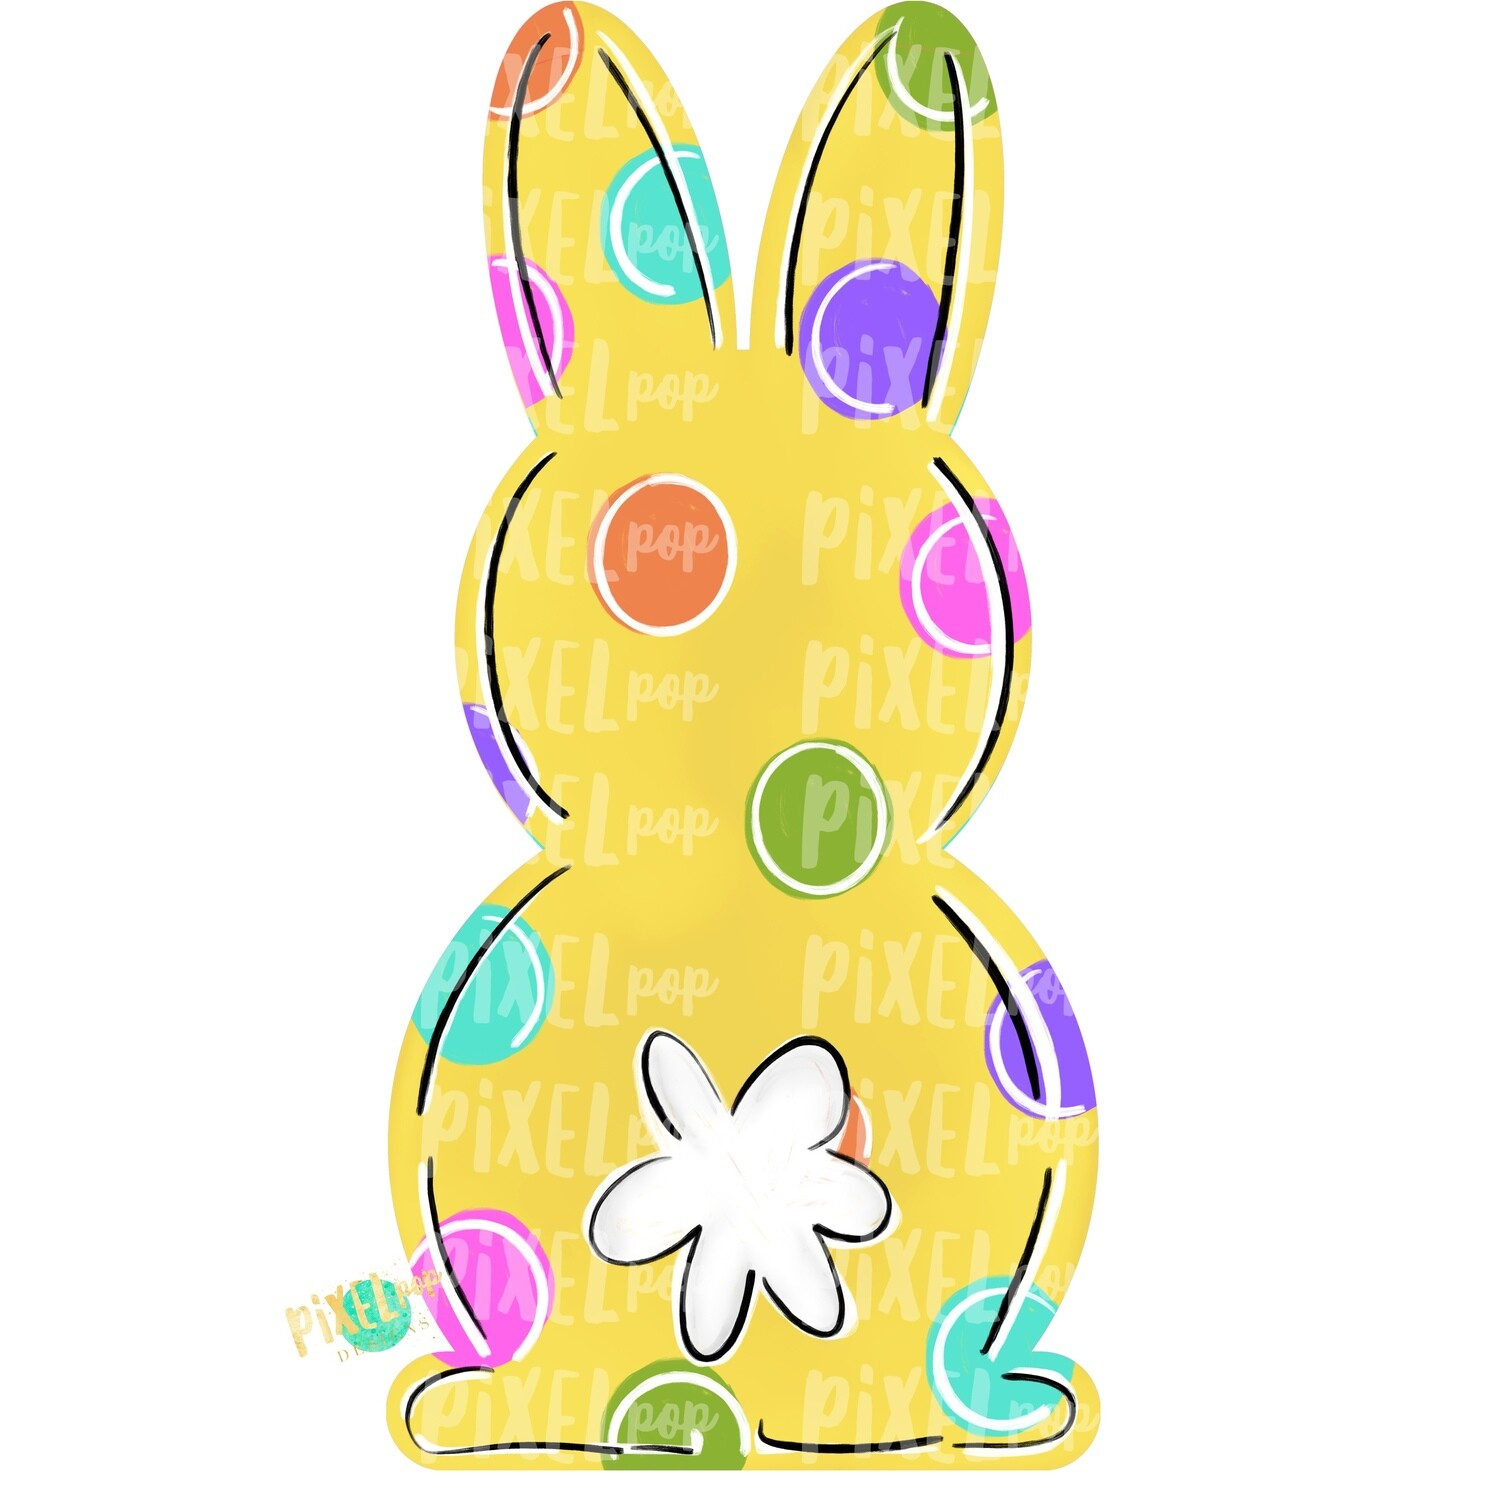 Bunny Back Yellow Easter PNG | Easter Bunny | Easter | Rabbit | Hop | Bunny PNG | Bunny Design | Bunny Tail | Easter Design | Easter PNG